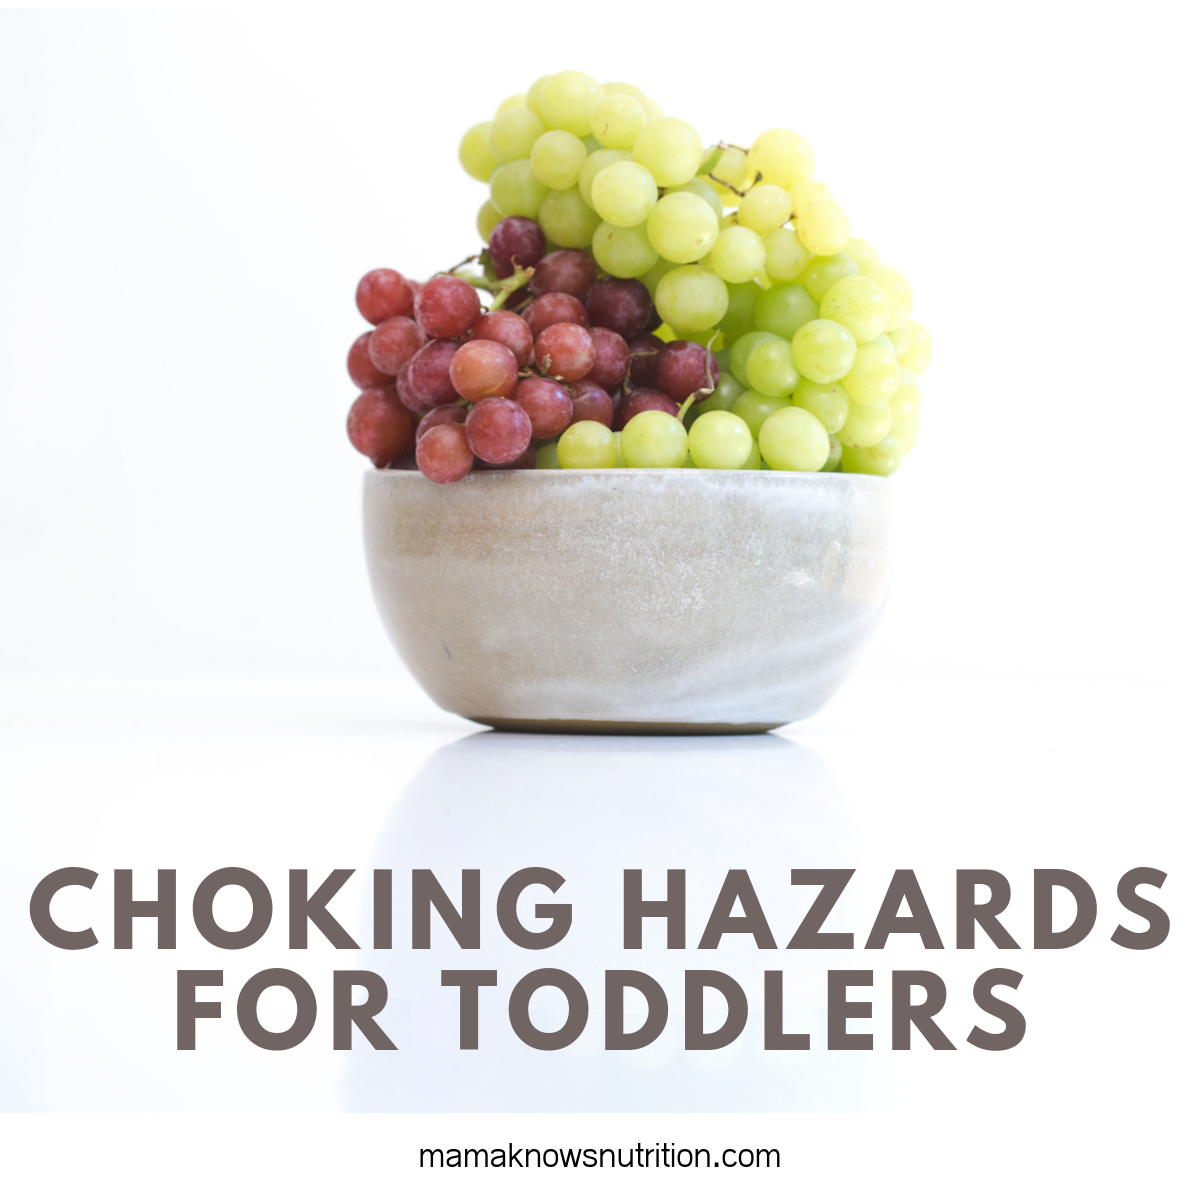 Which Foods are Choking Hazards for Toddlers